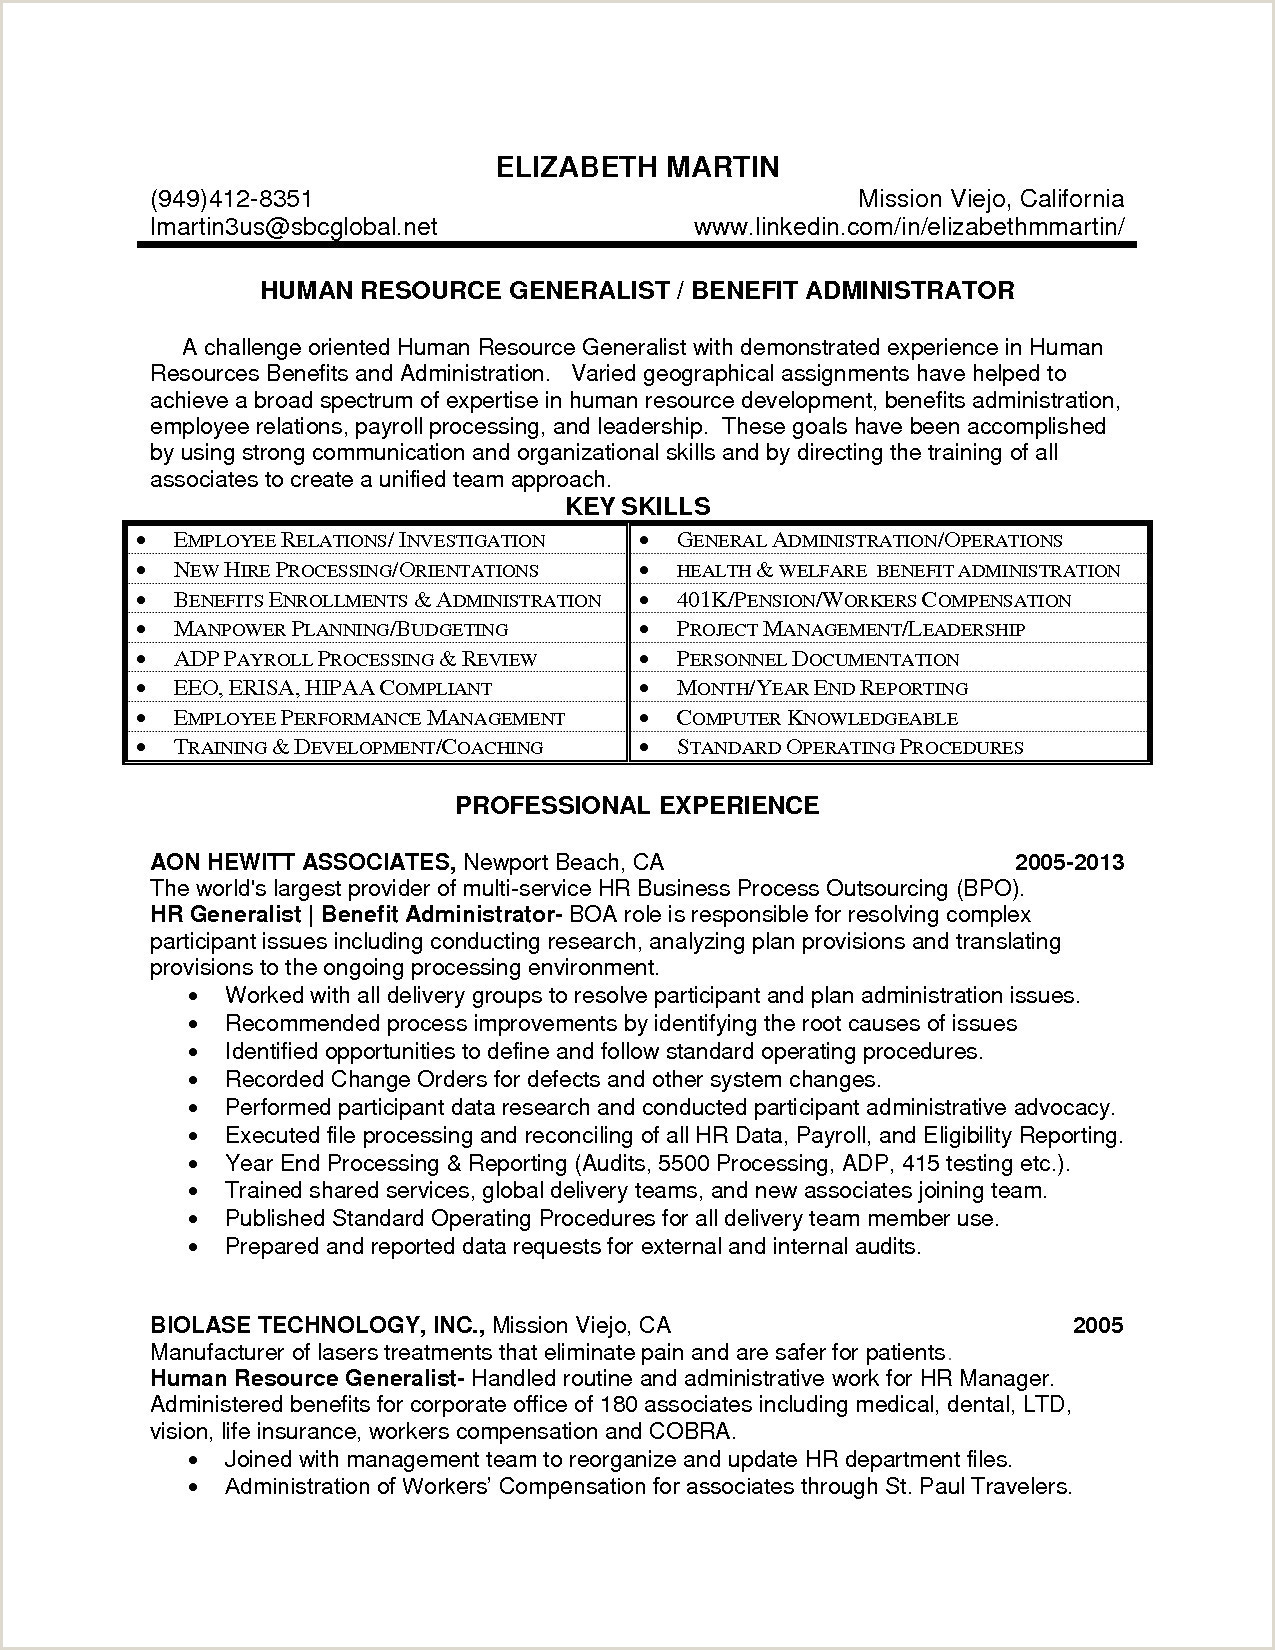 Human Resources Manager Resume Sample Inspirational Resource Manager Resume